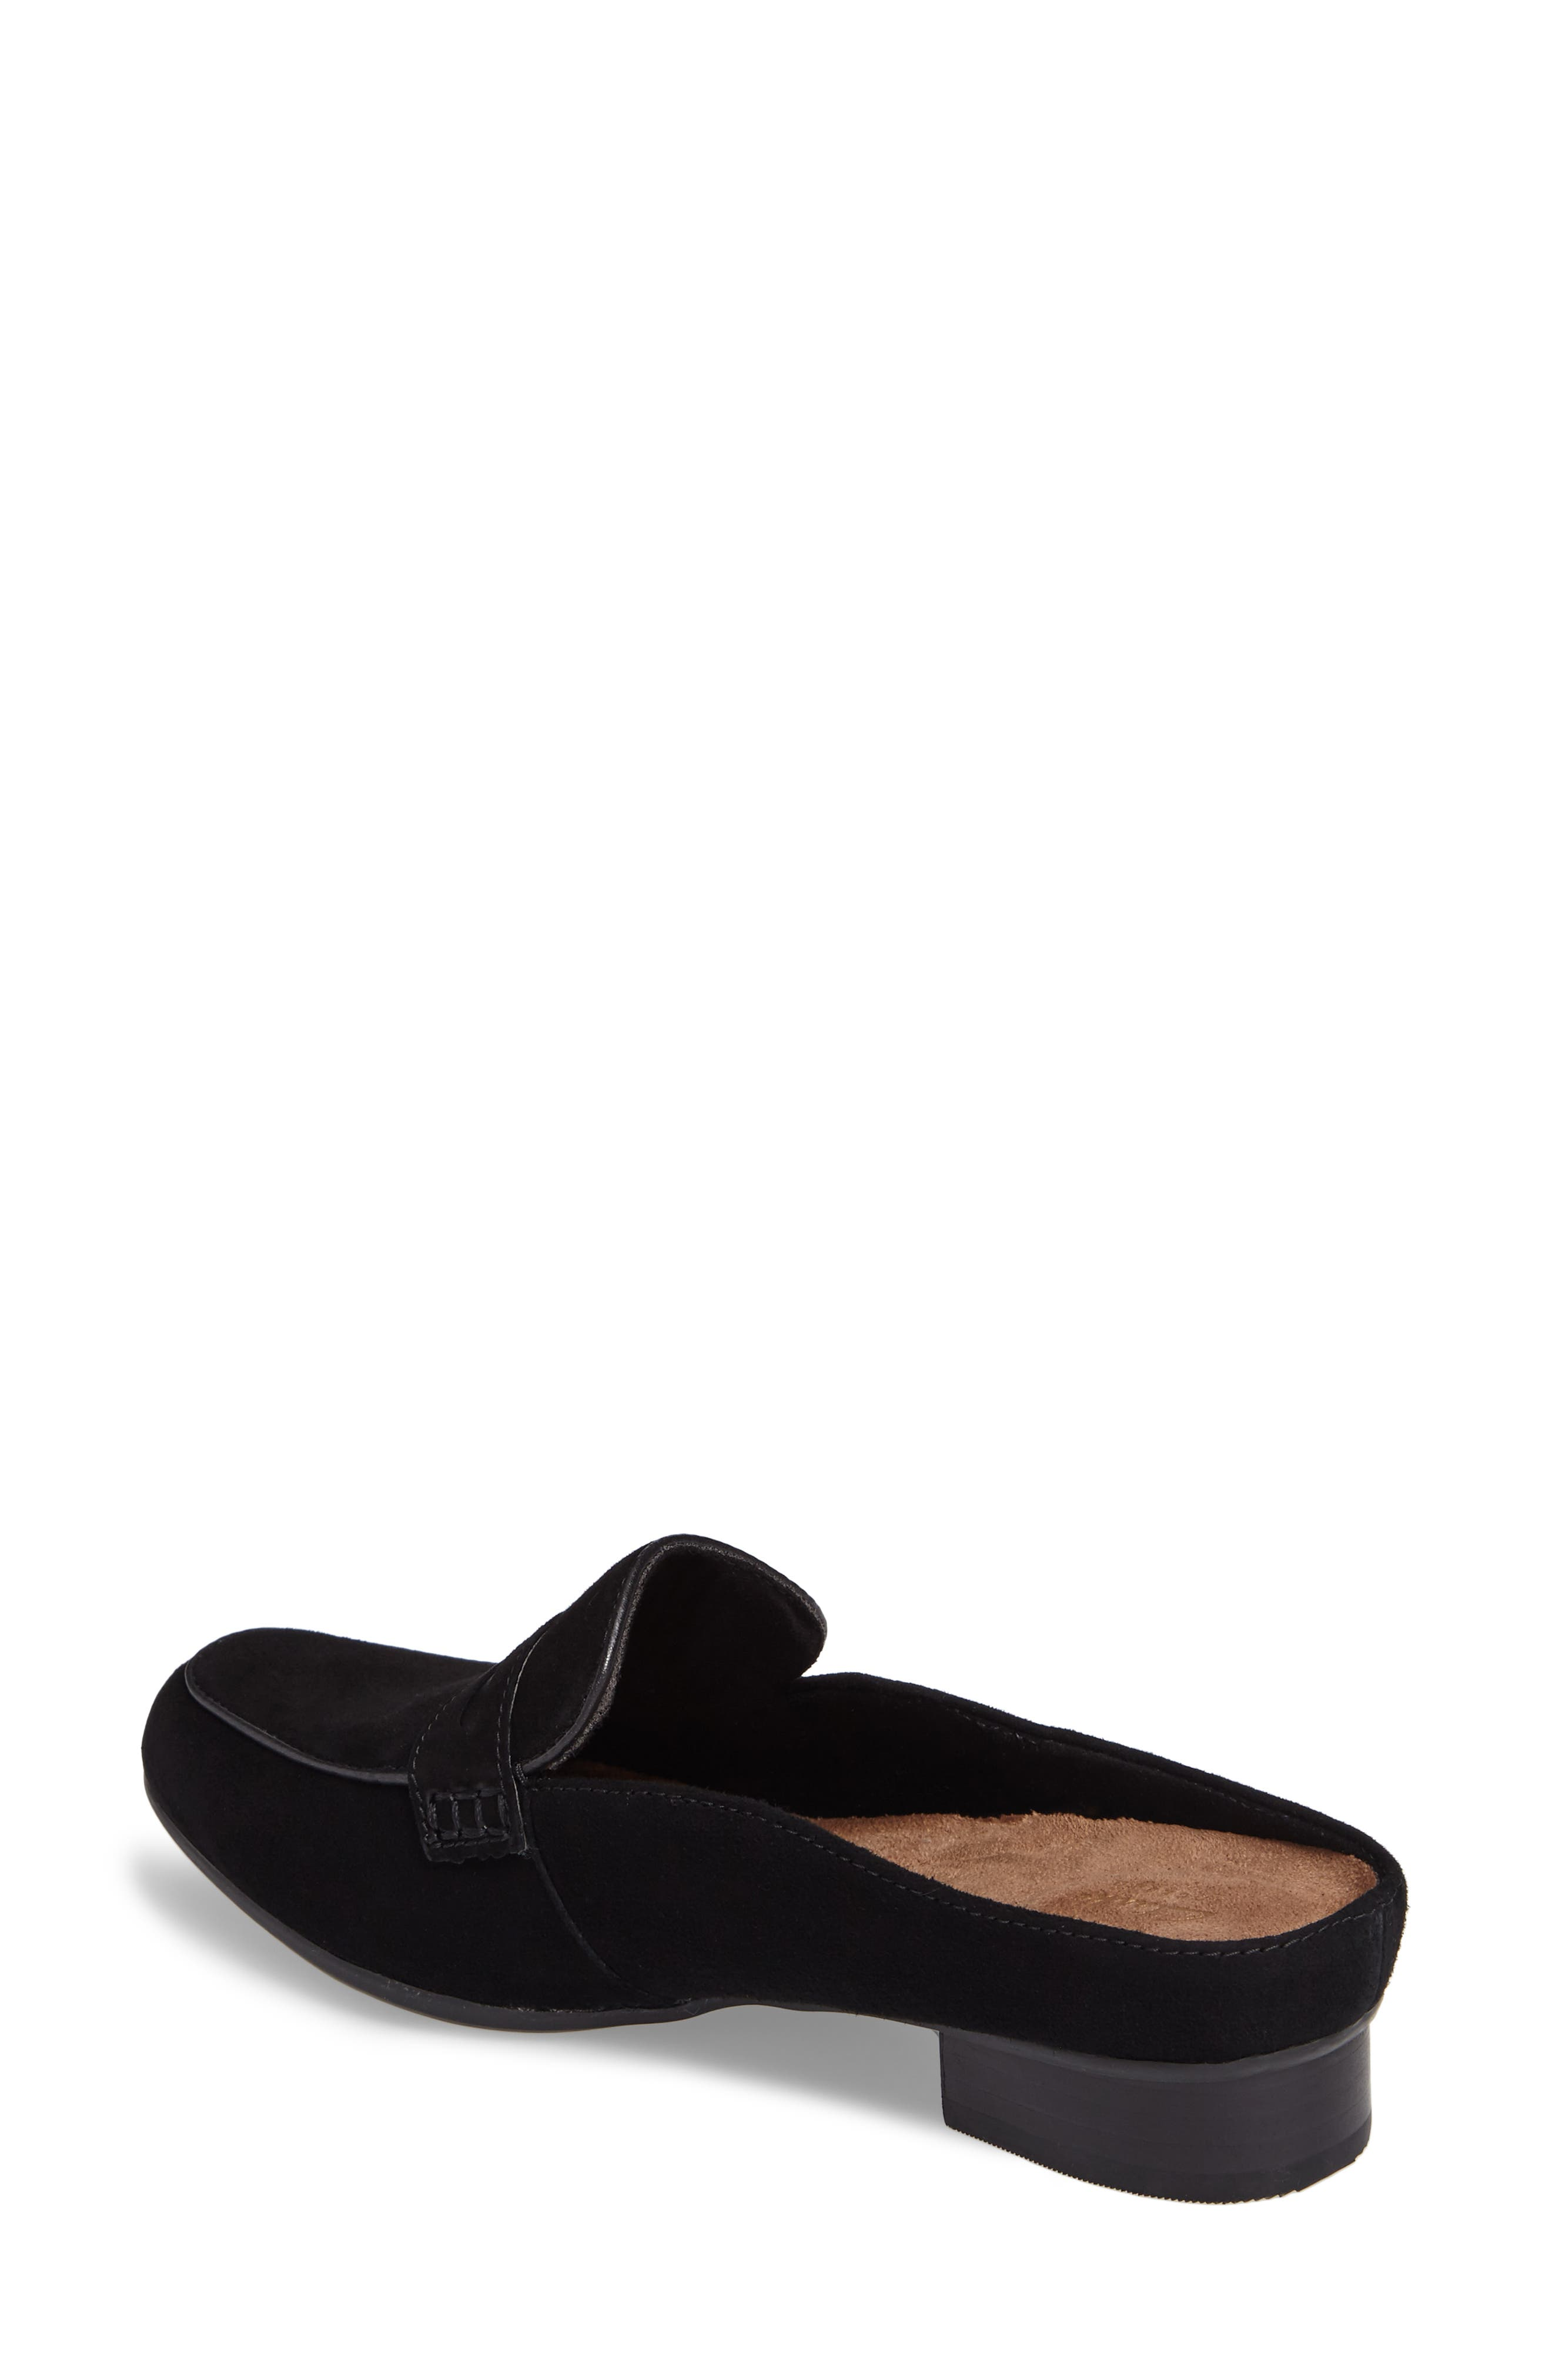 Keesha Donna Loafer Mule,                             Alternate thumbnail 2, color,                             007